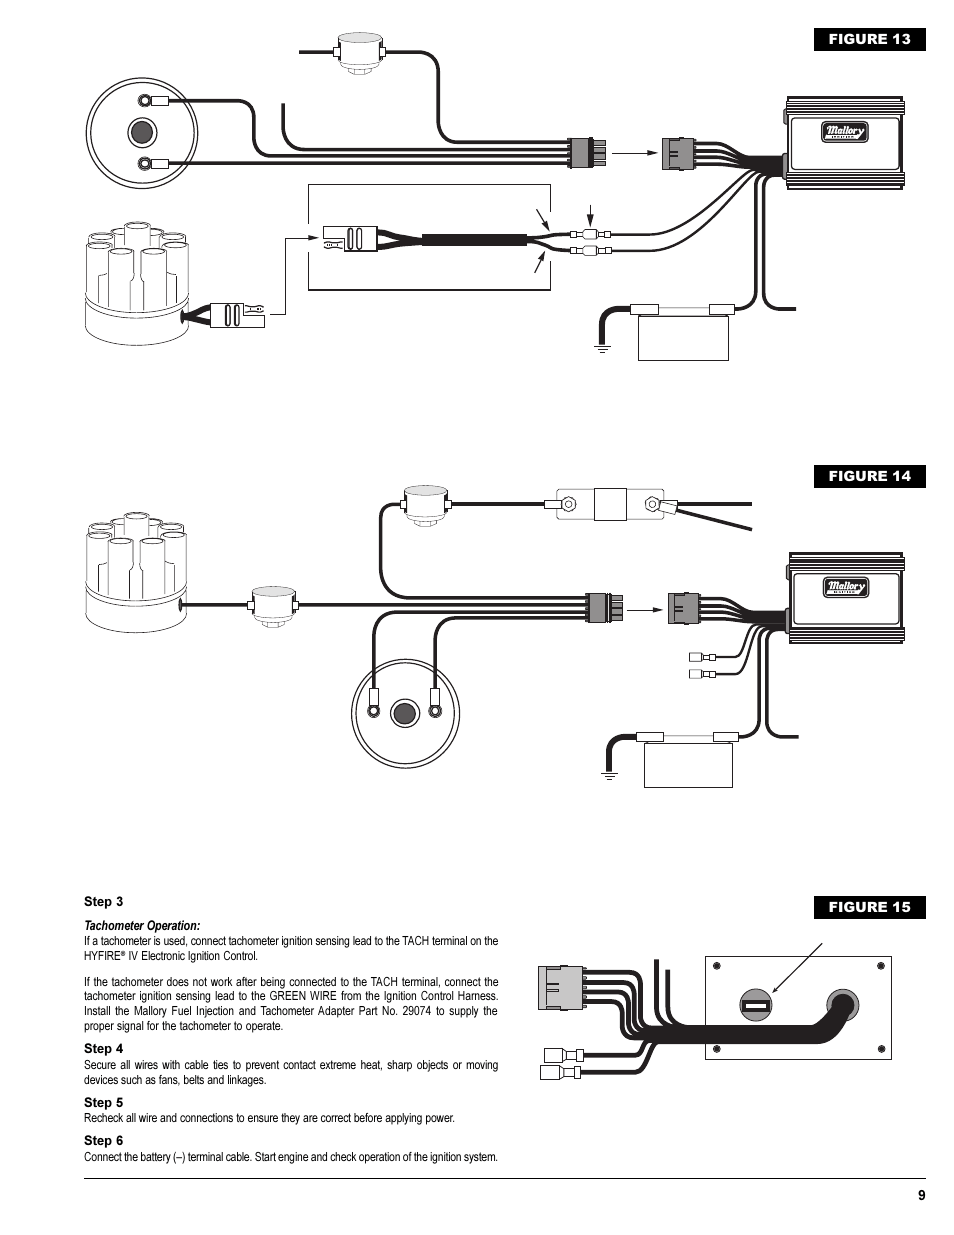 mallory ignition mallory hyfire iv series ignition system 692_697 page9?resize\\\\\\\\\\\\\\\\\\\=665%2C861 audiobahn aw1251t wiring diagram gandul 45 77 79 119 on aftermarket engine wiring harness at reclaimingppi.co